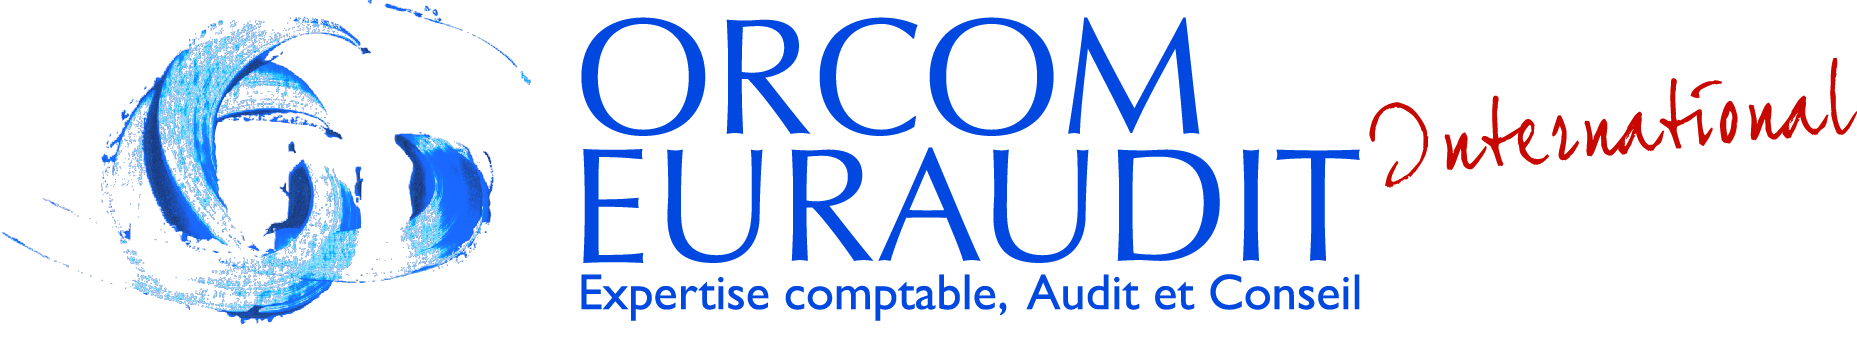 logo-orcom-euraudit-international